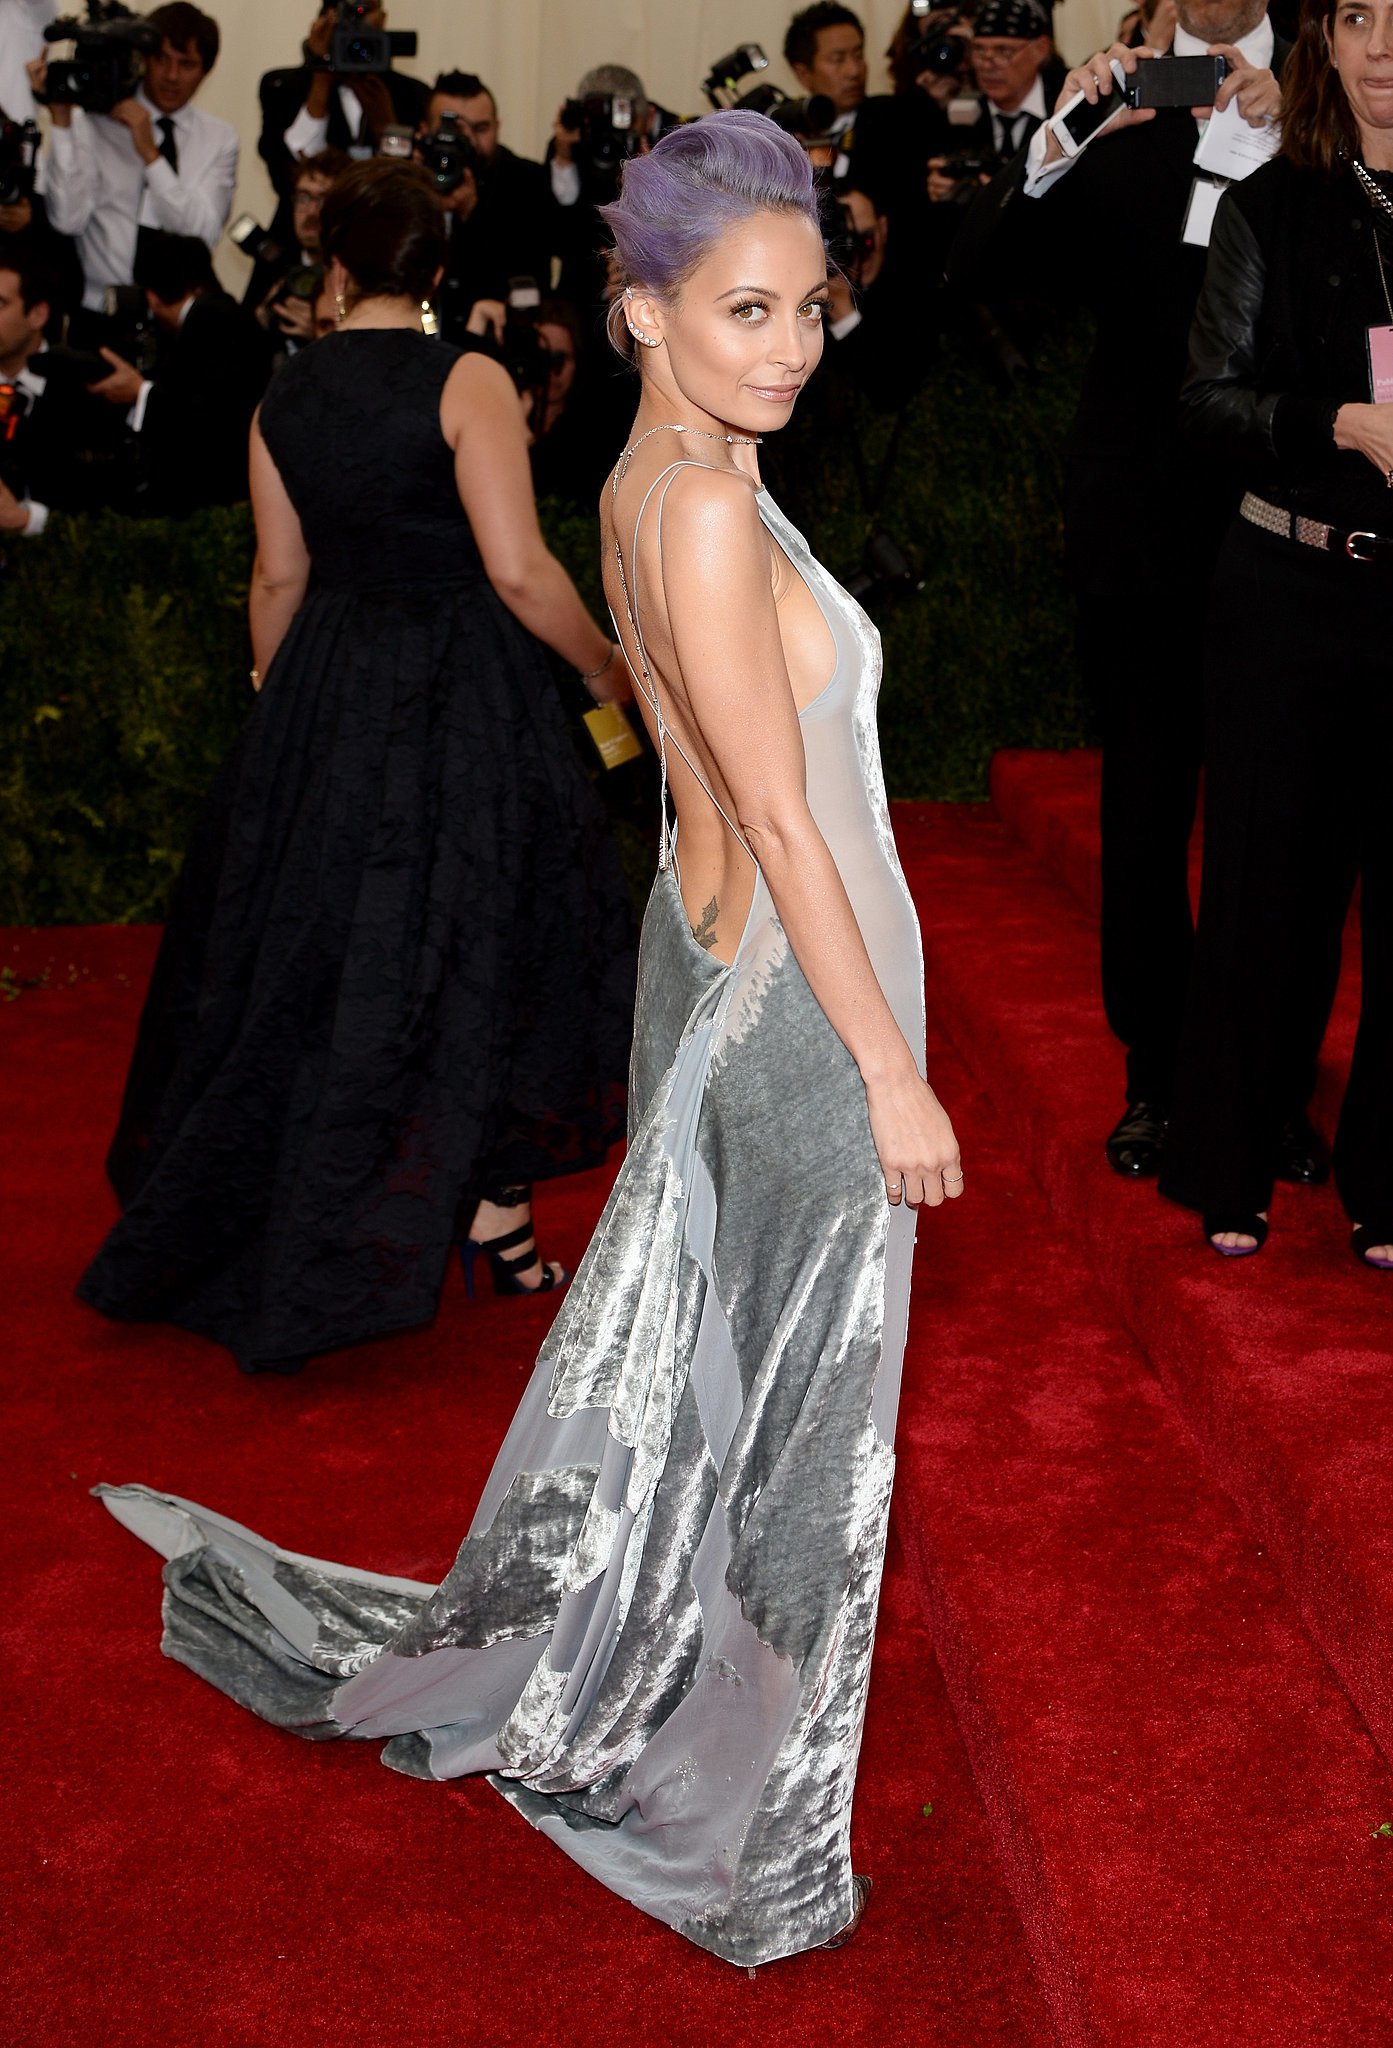 Nicole Richie at the Costume Institute Ball